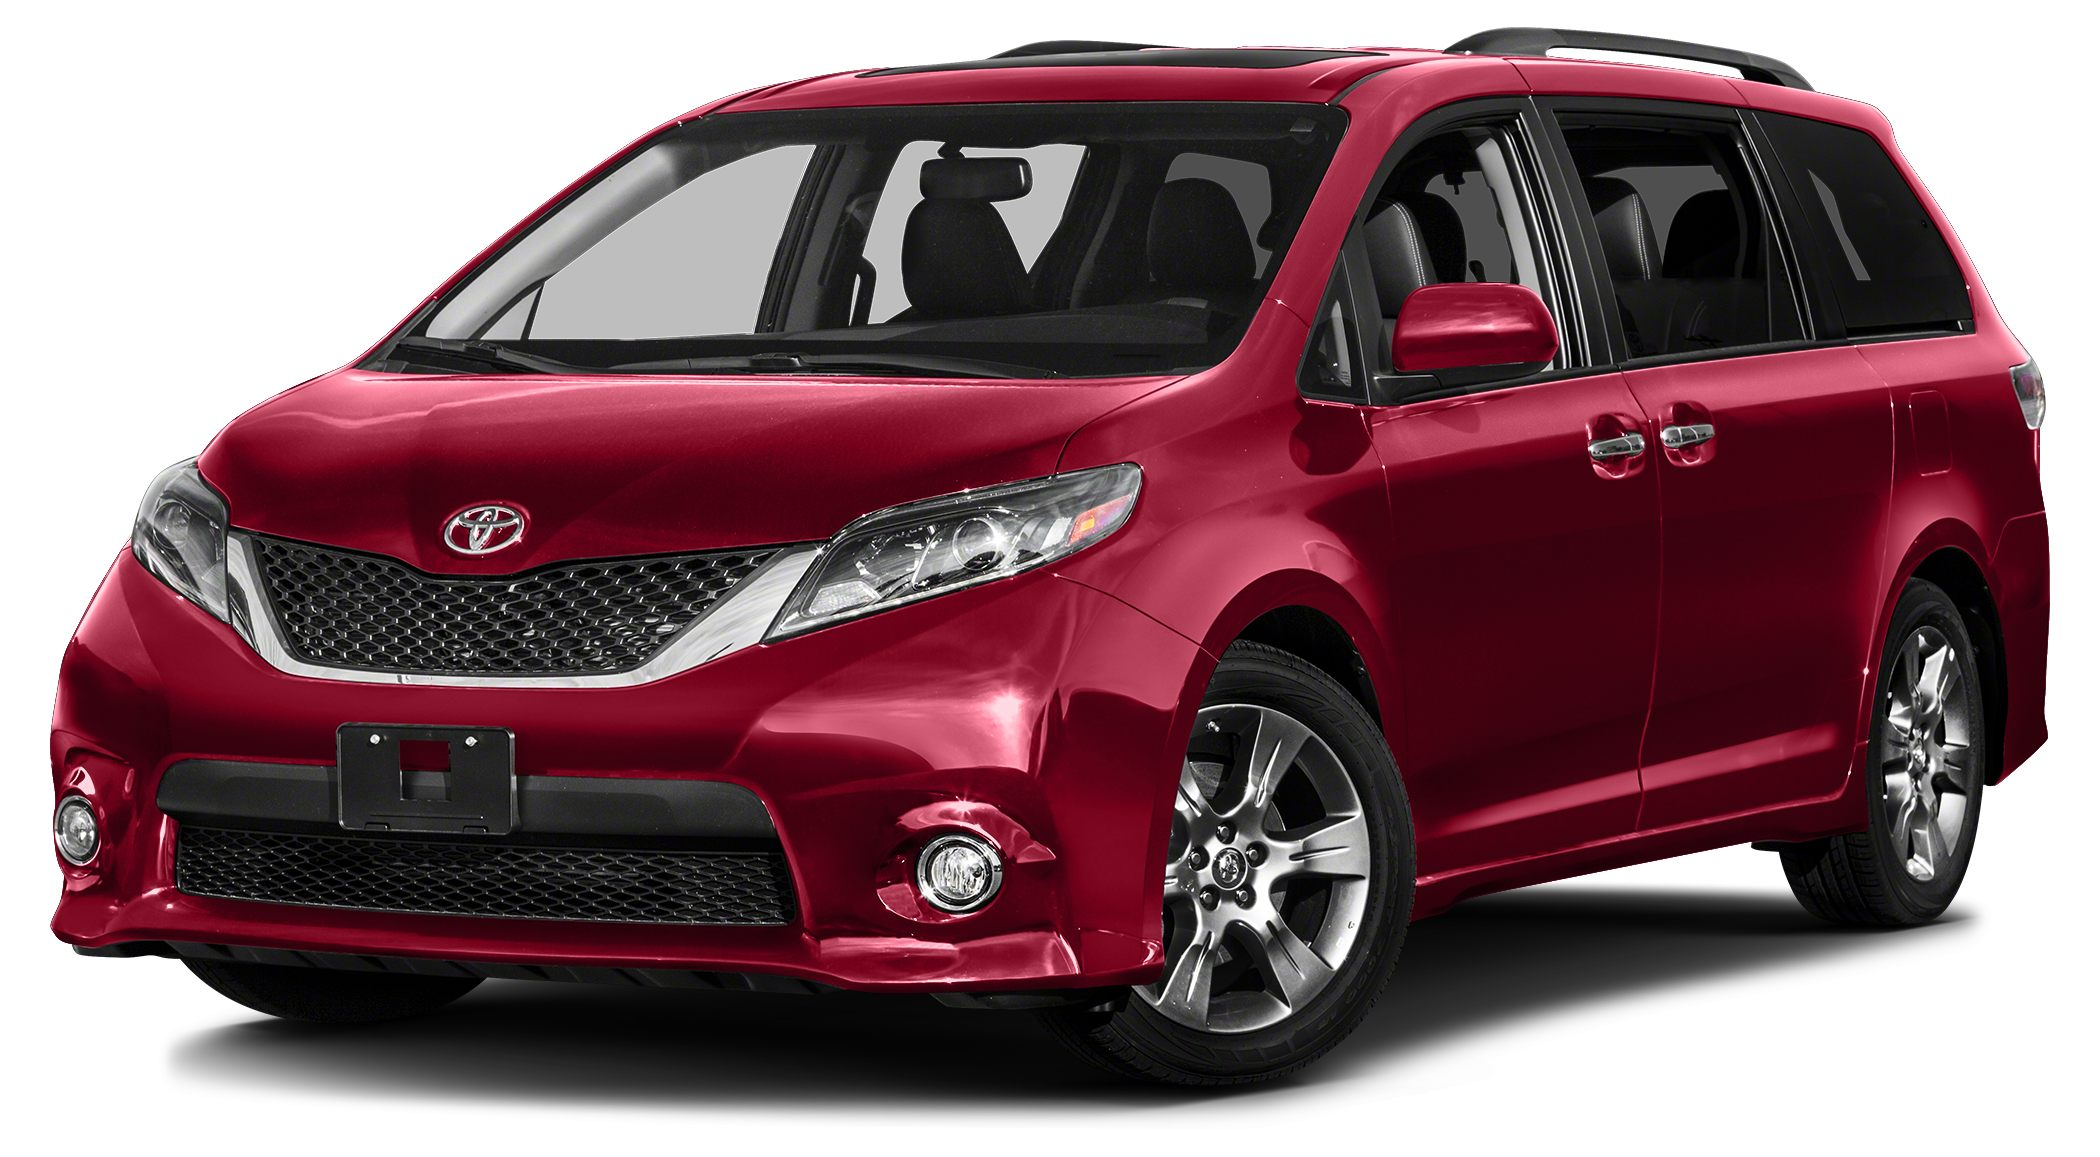 2015 Toyota Sienna SE 8 Passenger Families always have somewhere to go and the Toyota Sienna can